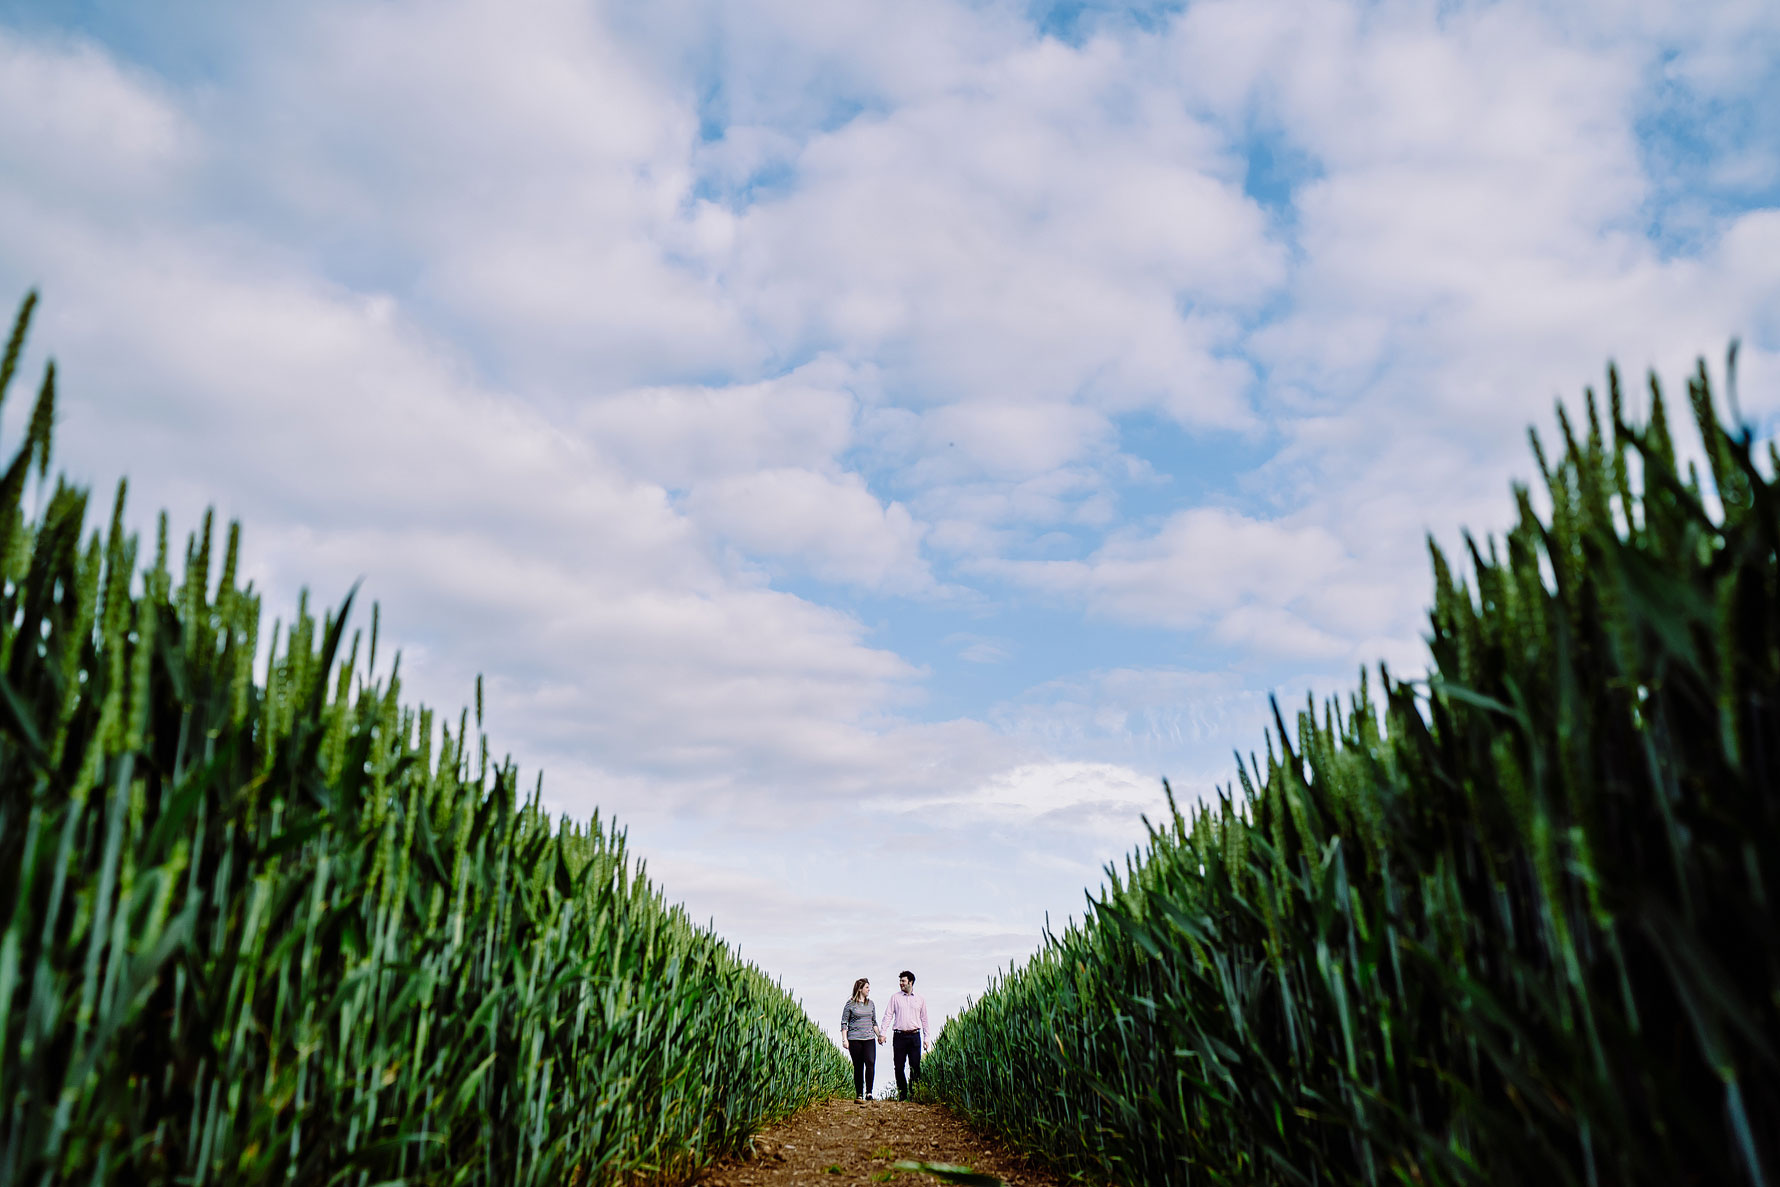 a symmetrical image of a couple walking through a cornfield